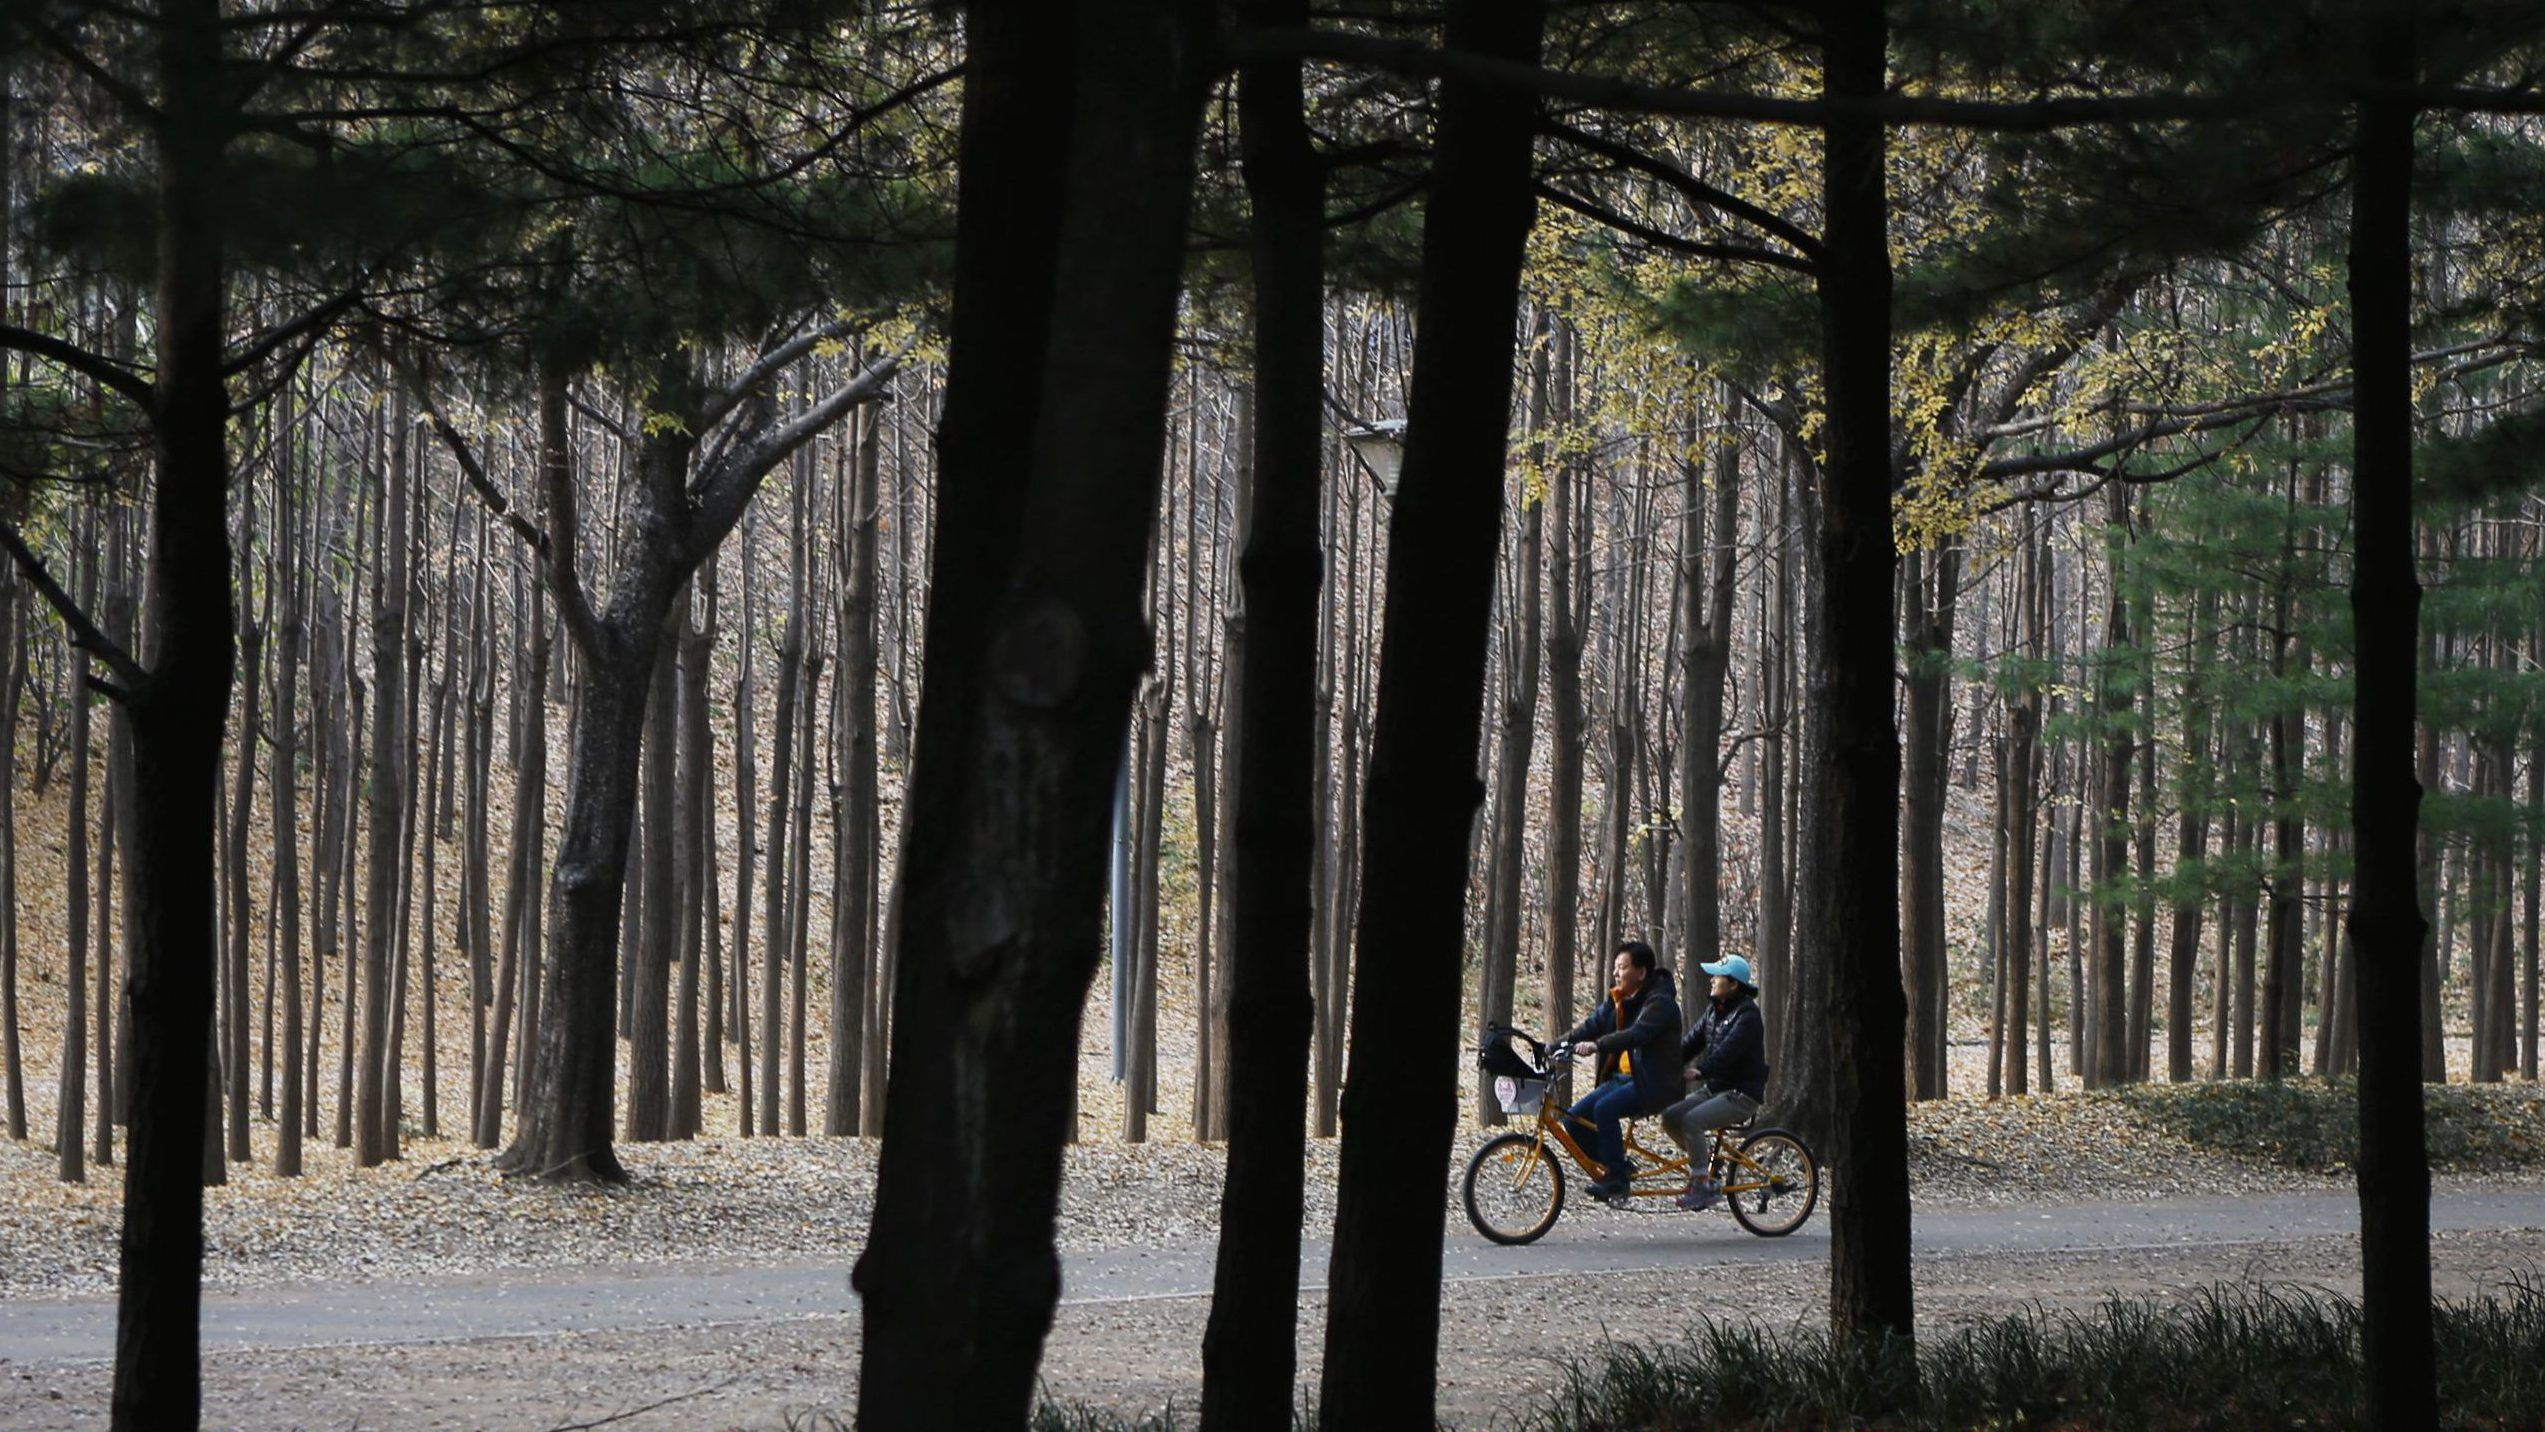 A couple rides a tandem bicycle through a forest on a late autumn day